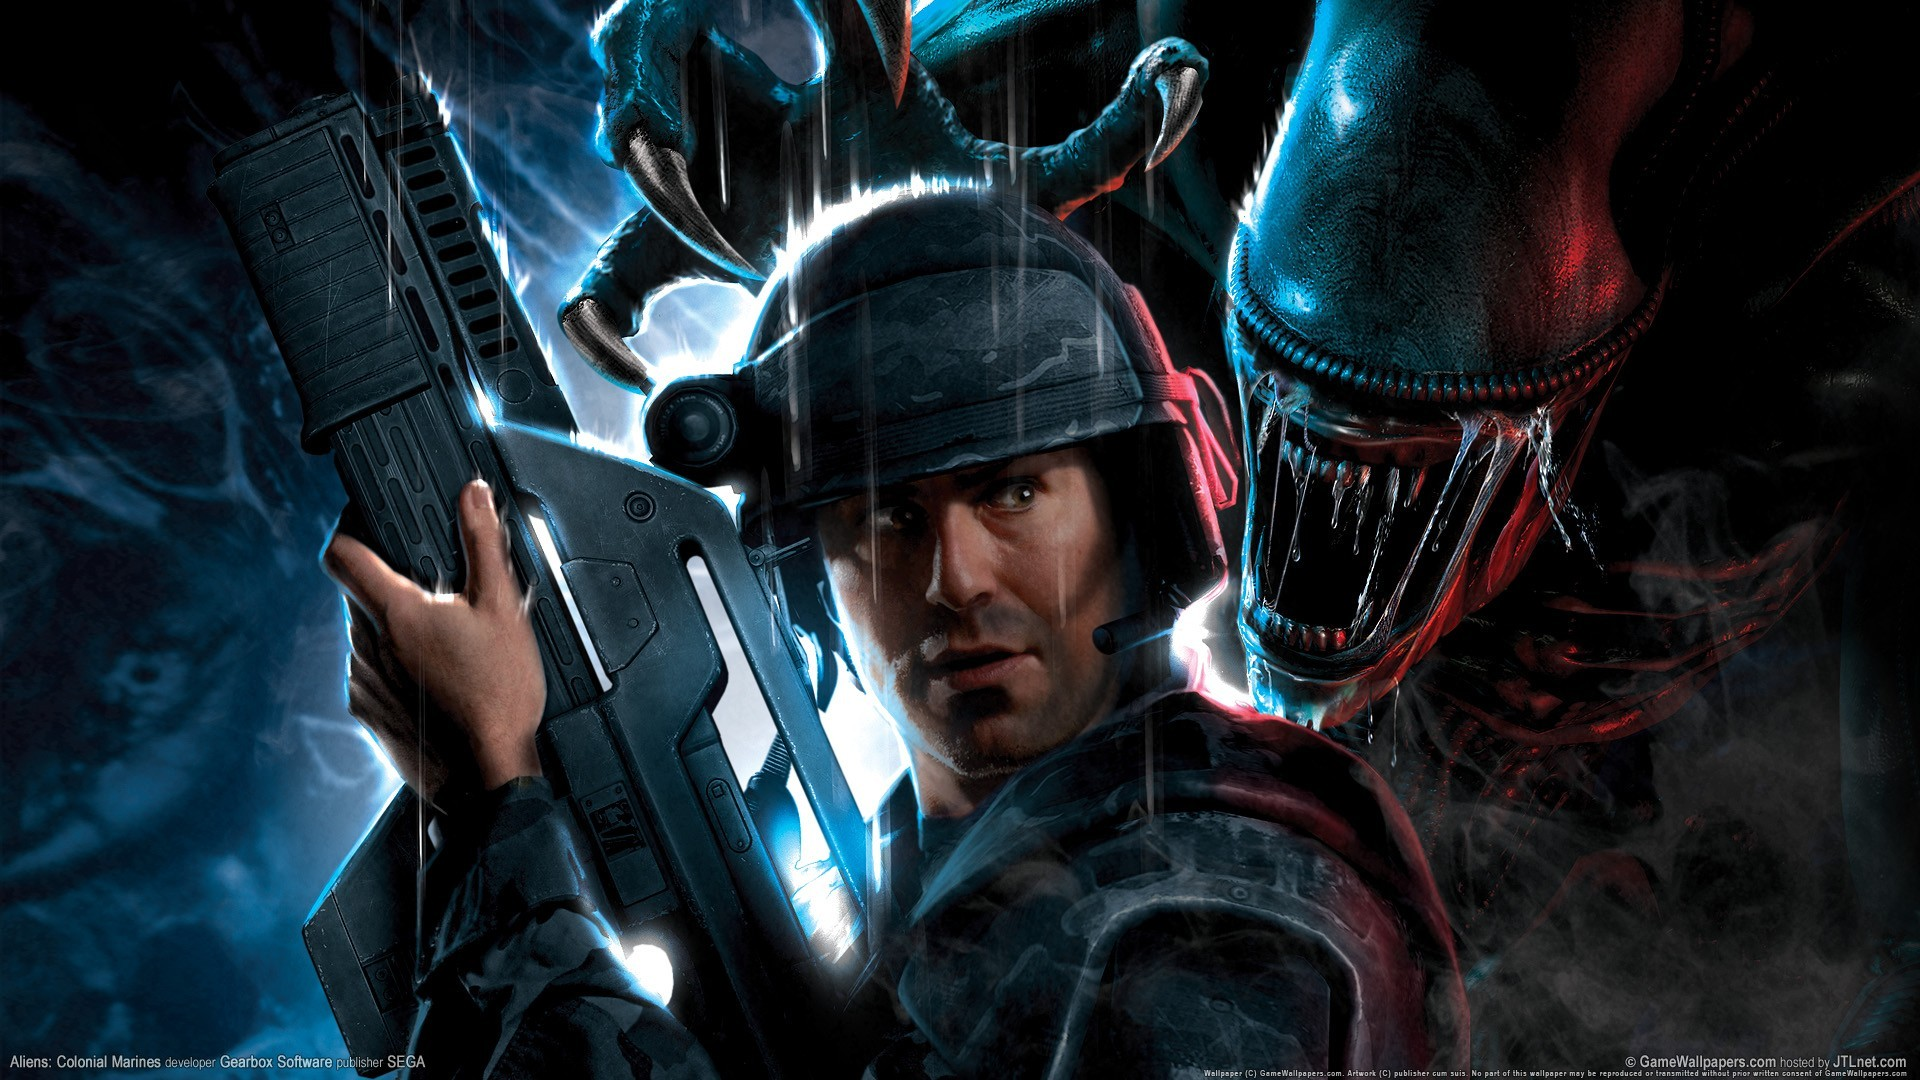 General 1920x1080 video games Aliens: Colonial Marines Xenomorph weapon horror science fiction video game art Gearbox Software Sega space marines video game man Science Fiction Men Alien (Creature) PC gaming